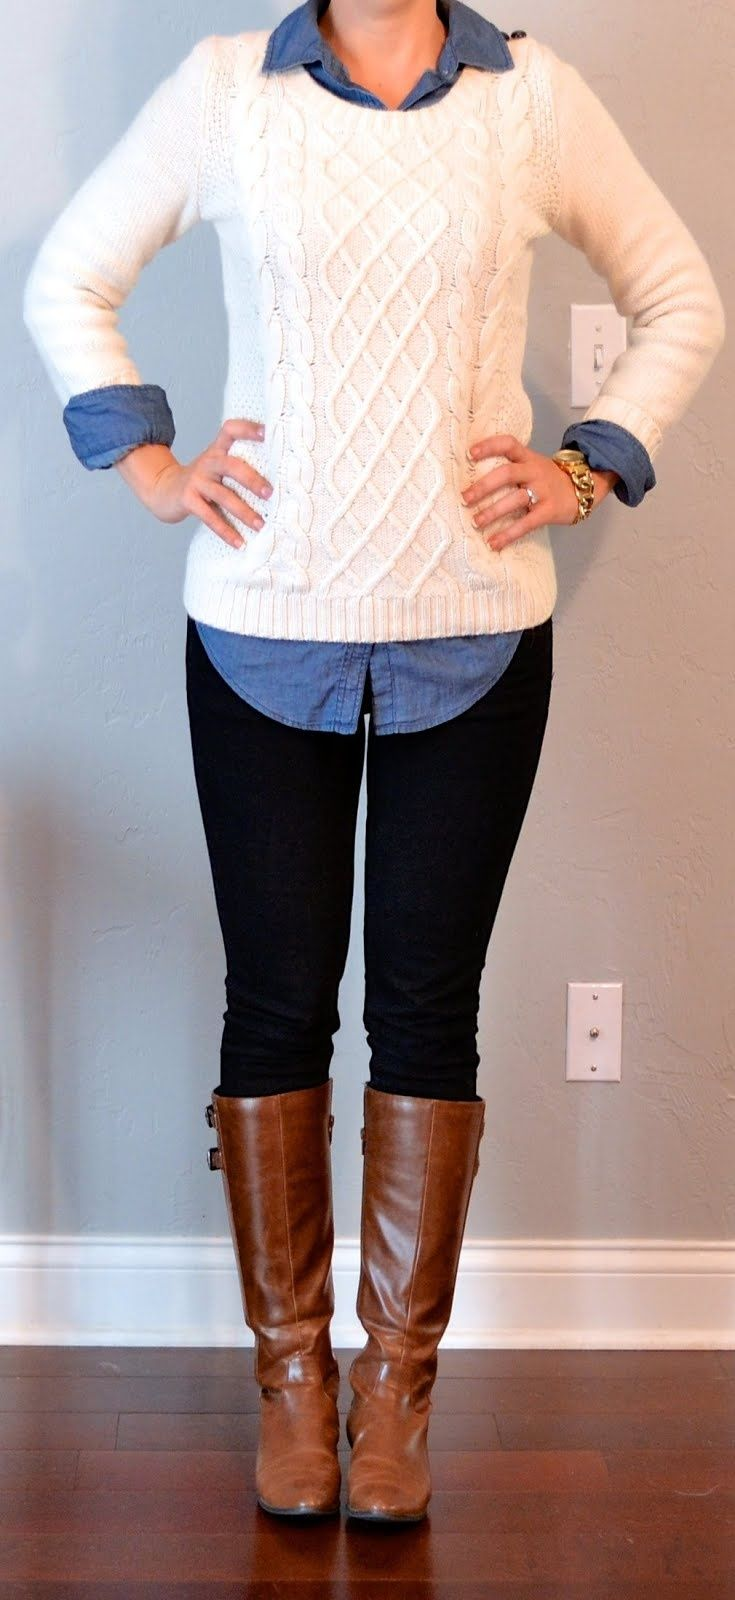 Black t shirt old navy - Top Chambray Shirt Old Navy Cream Cable Knit Sweater H Bottom Black